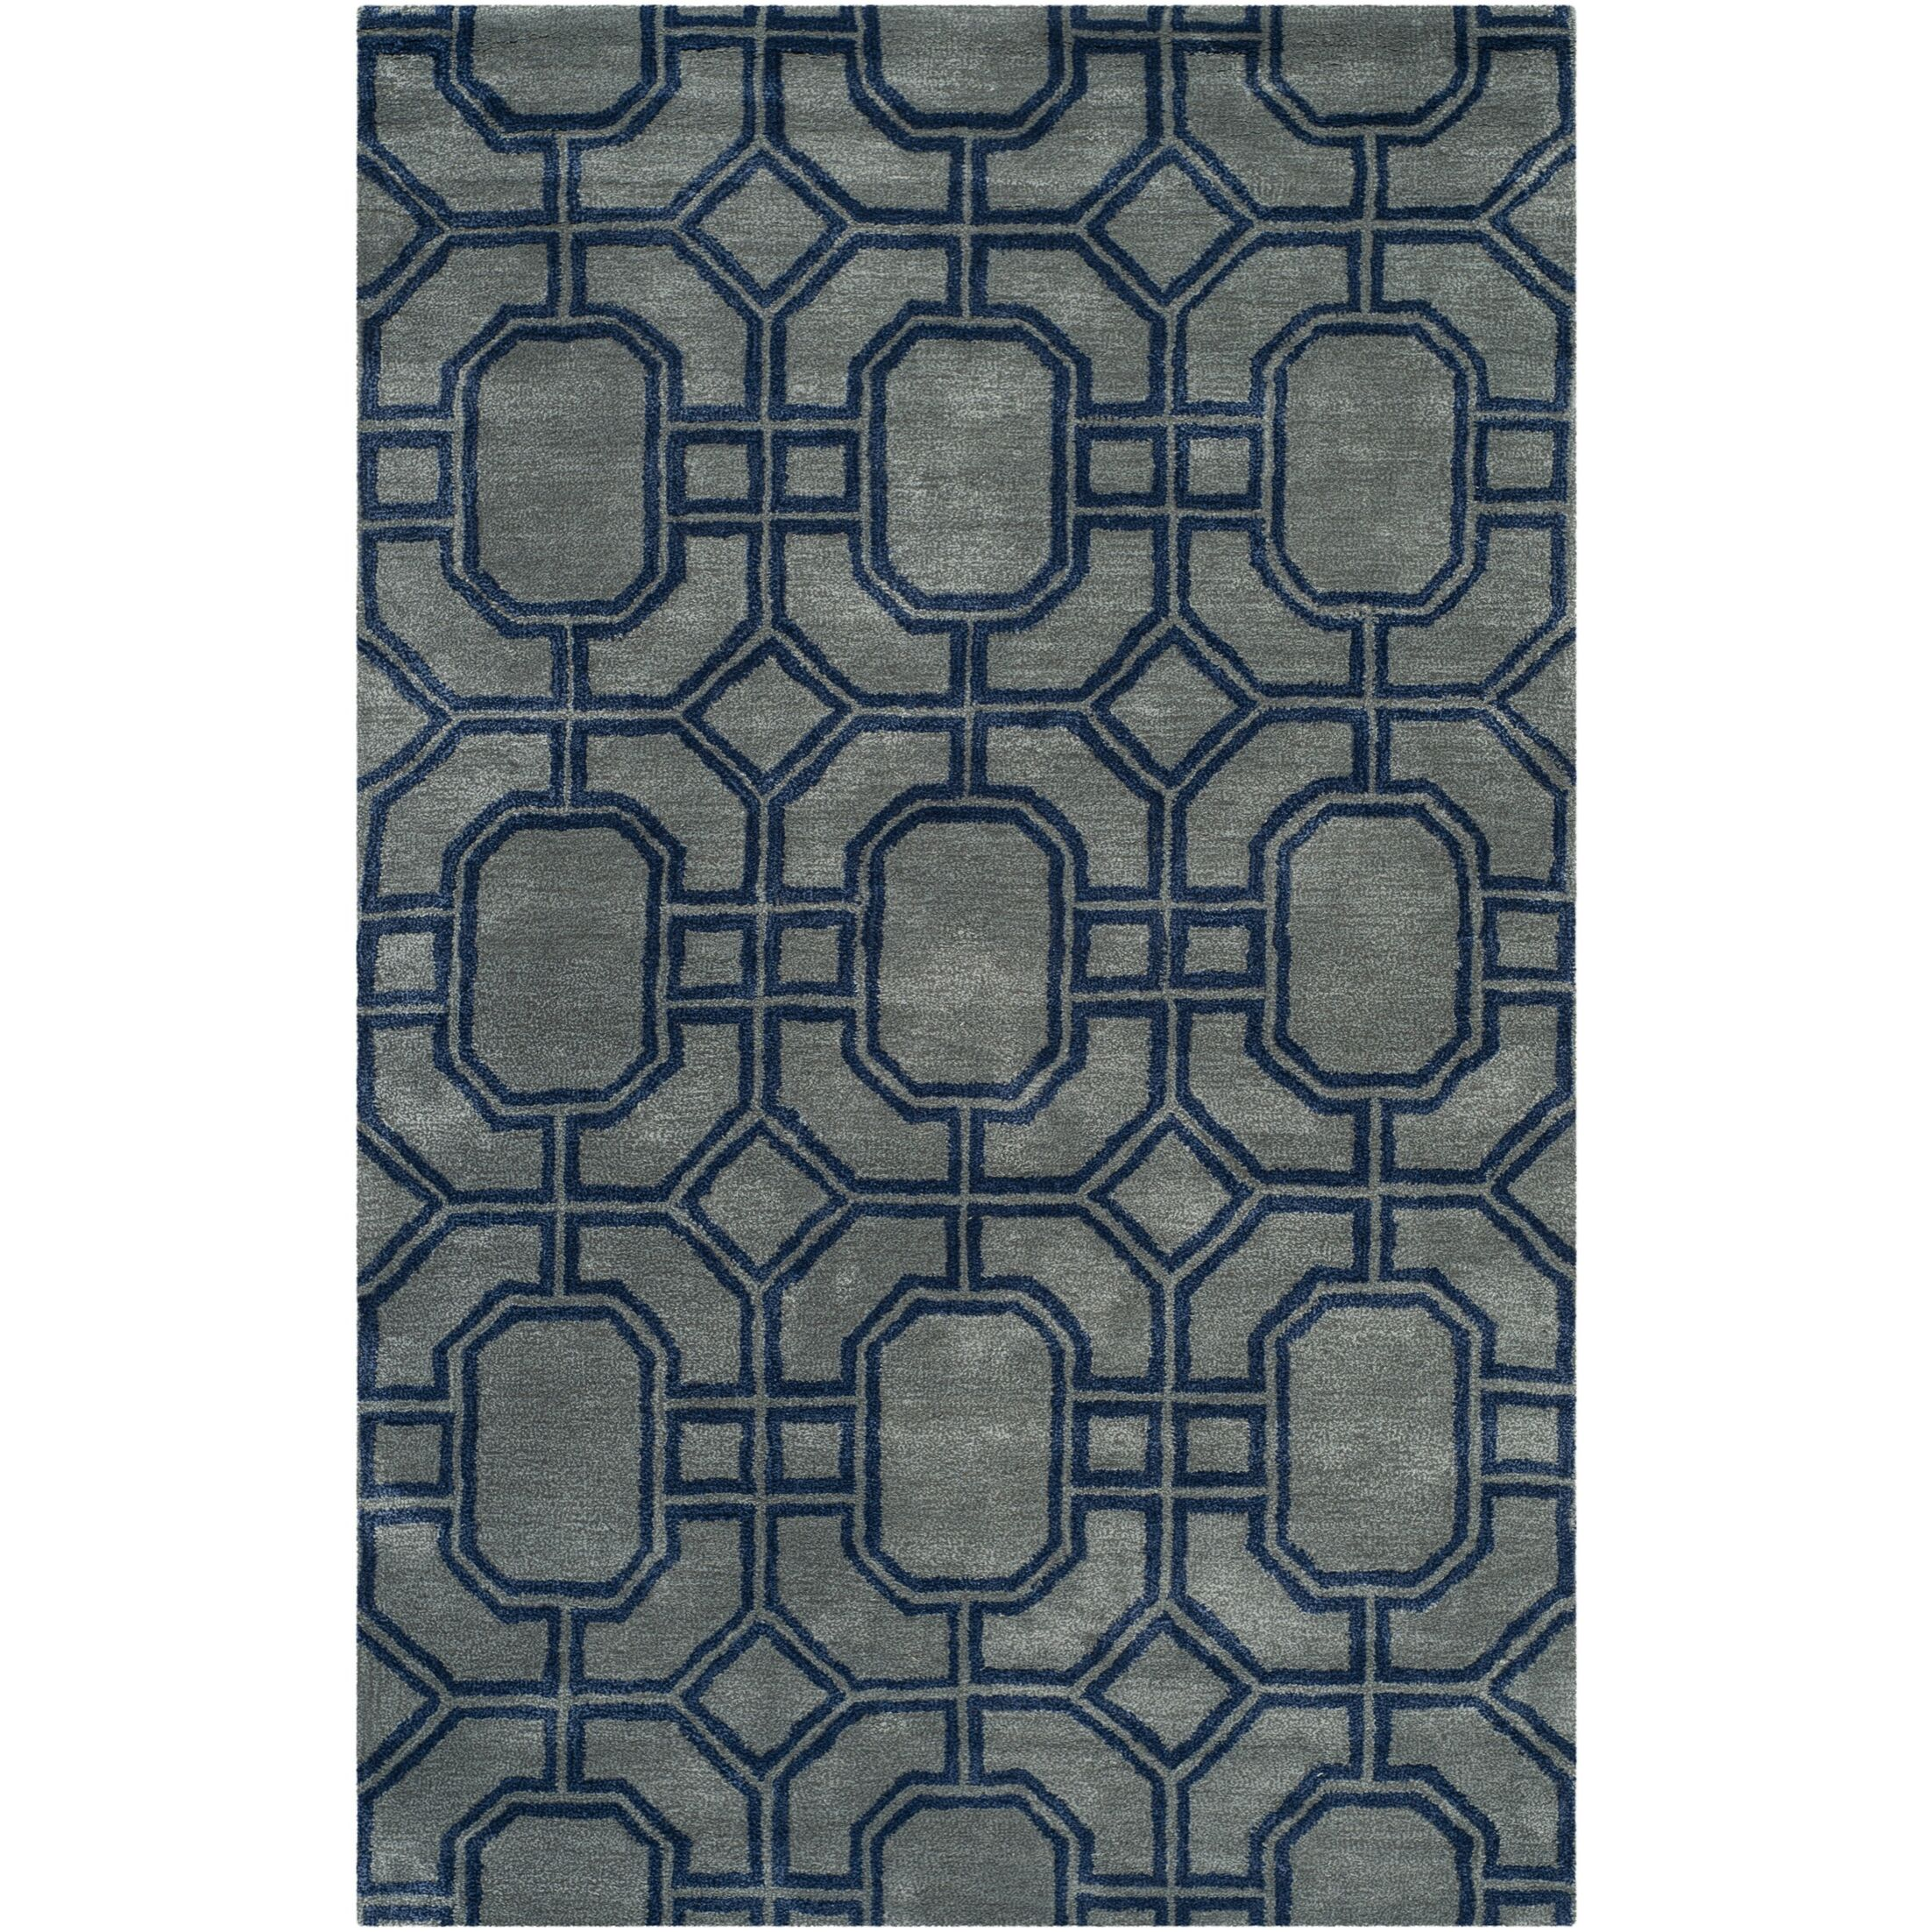 Schaub Hand-Tufted Gray/Dark Blue Area Rug Rug Size: Rectangle 7'6